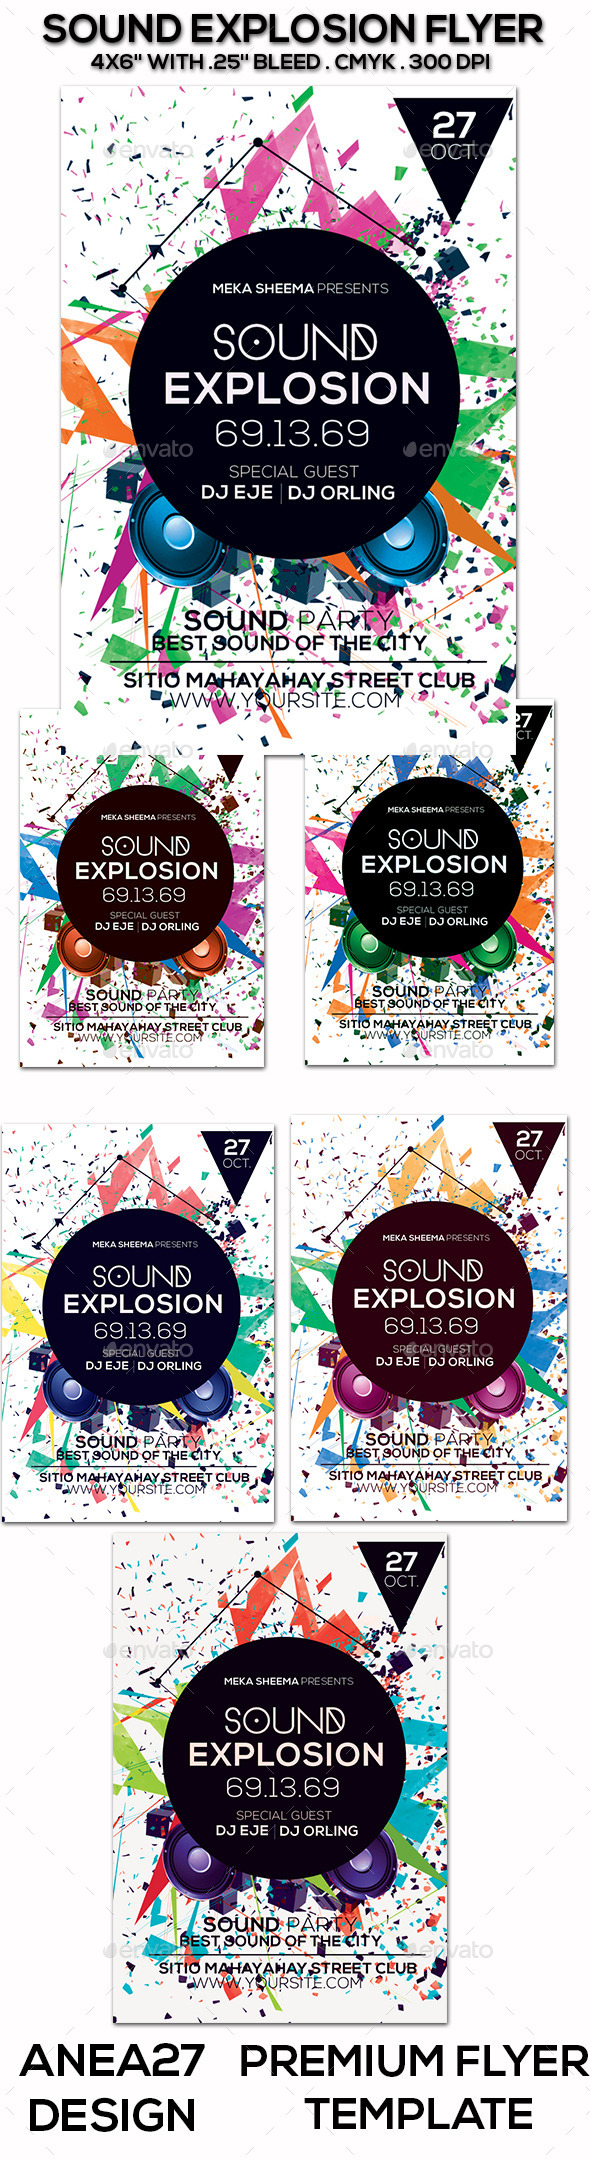 GraphicRiver Sound Explosion Flyer 9647282